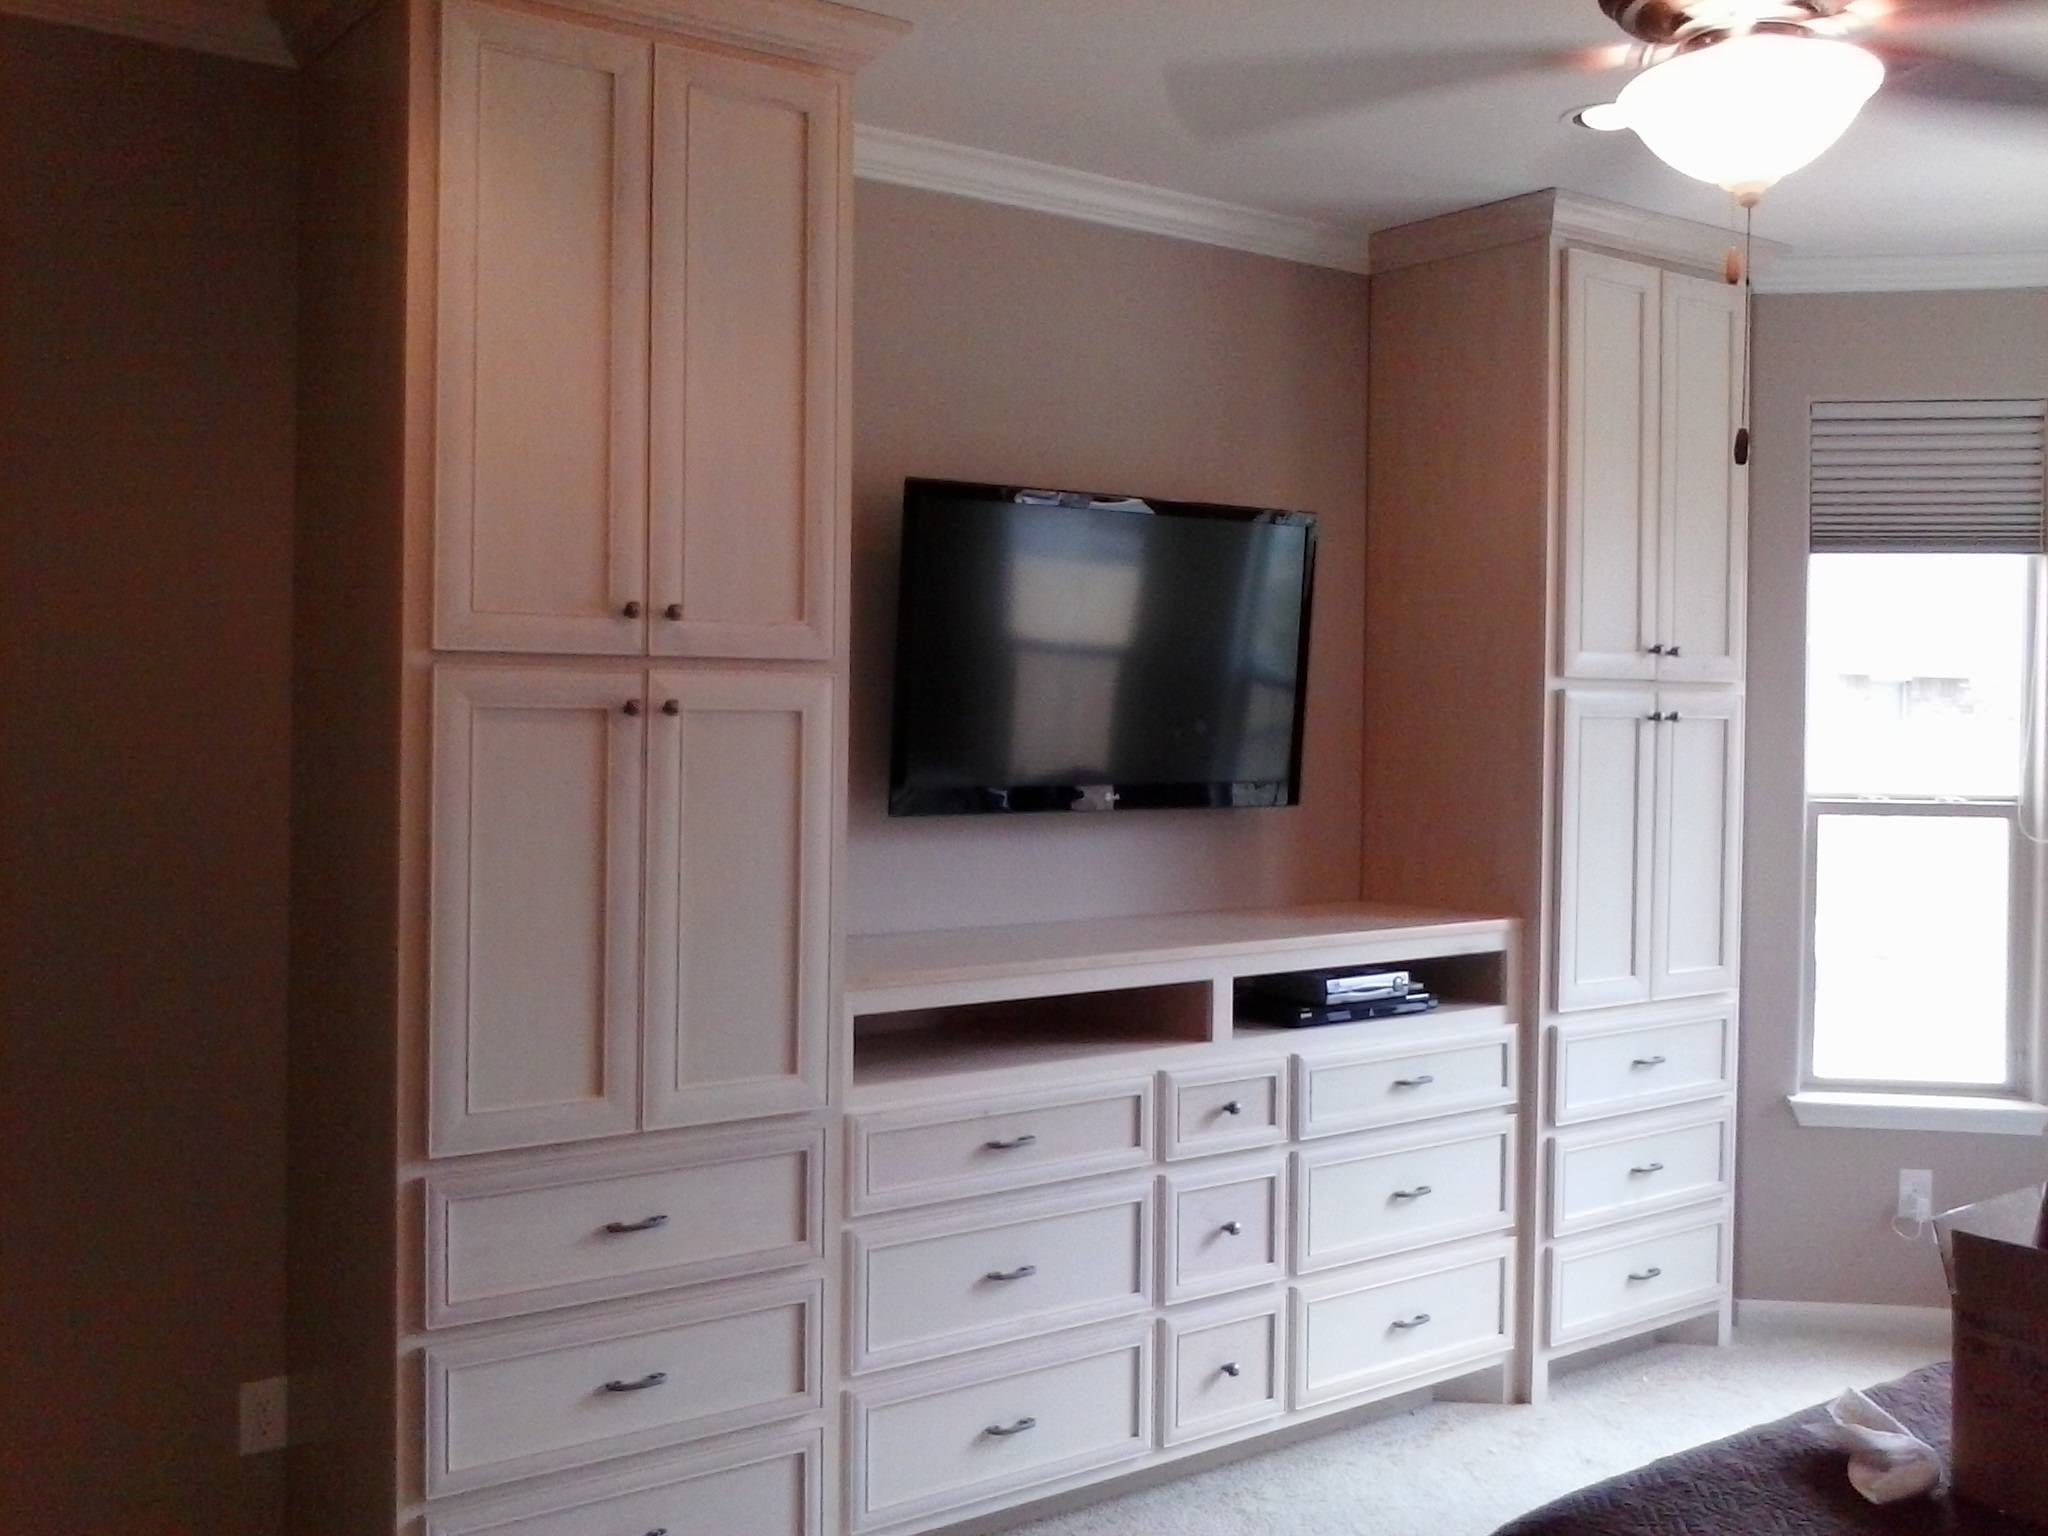 Image of  Bedroom Wall Units with Drawers and TV Best 25 wall units ideas on Pinterest Tv unit for